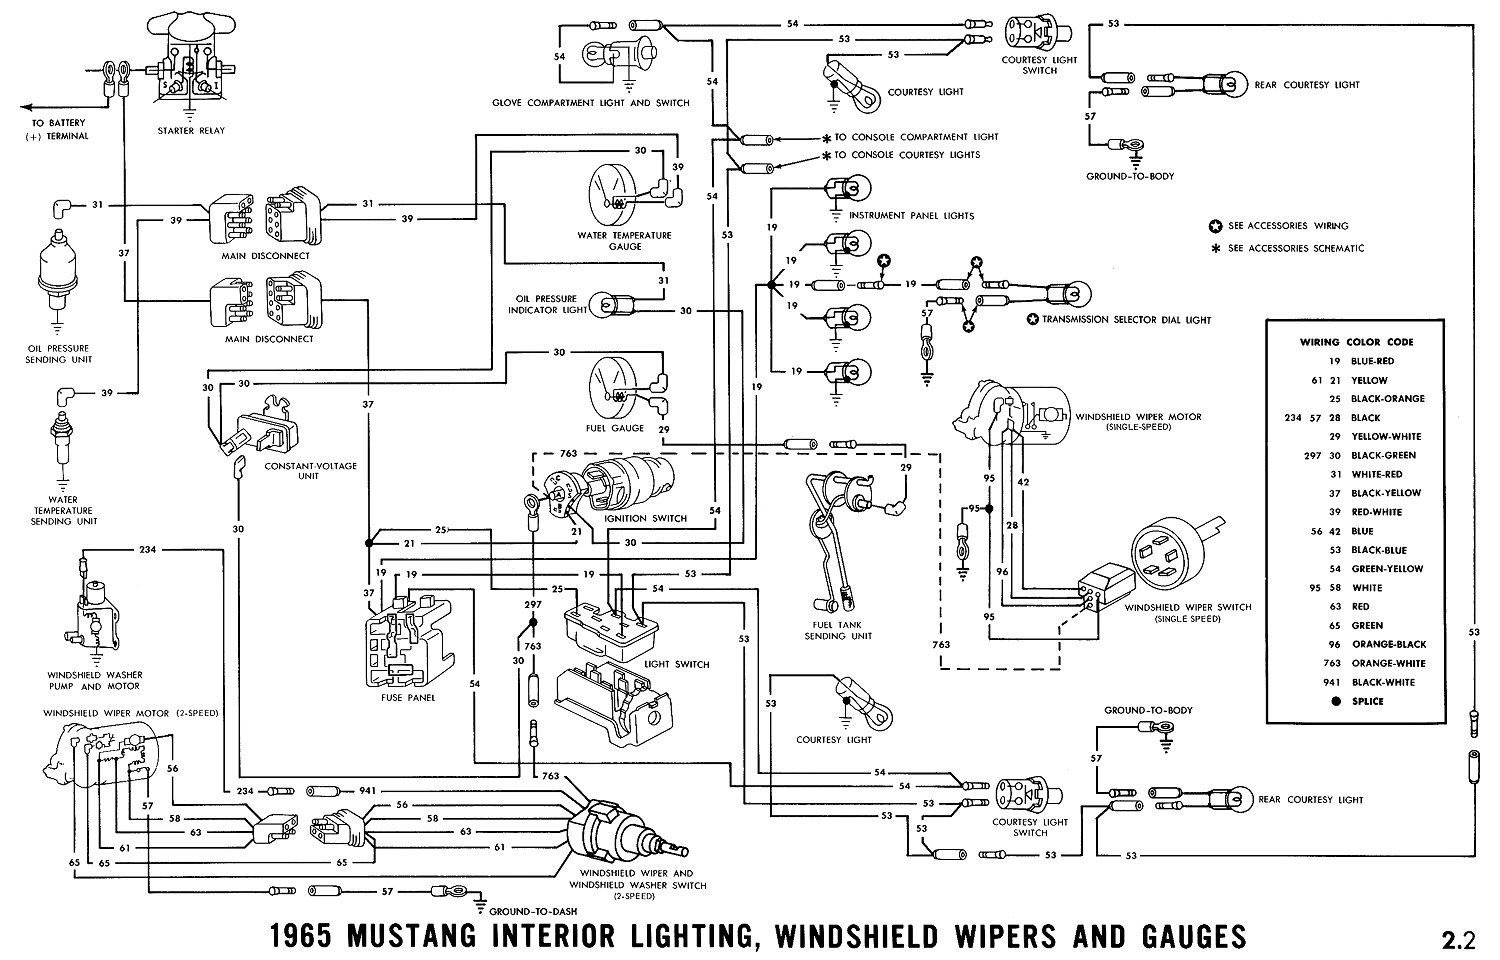 1965 mustang wiring diagrams average joe restoration rh averagejoerestoration com mustang wiring diagram 1967 mustang wiring diagram 1967